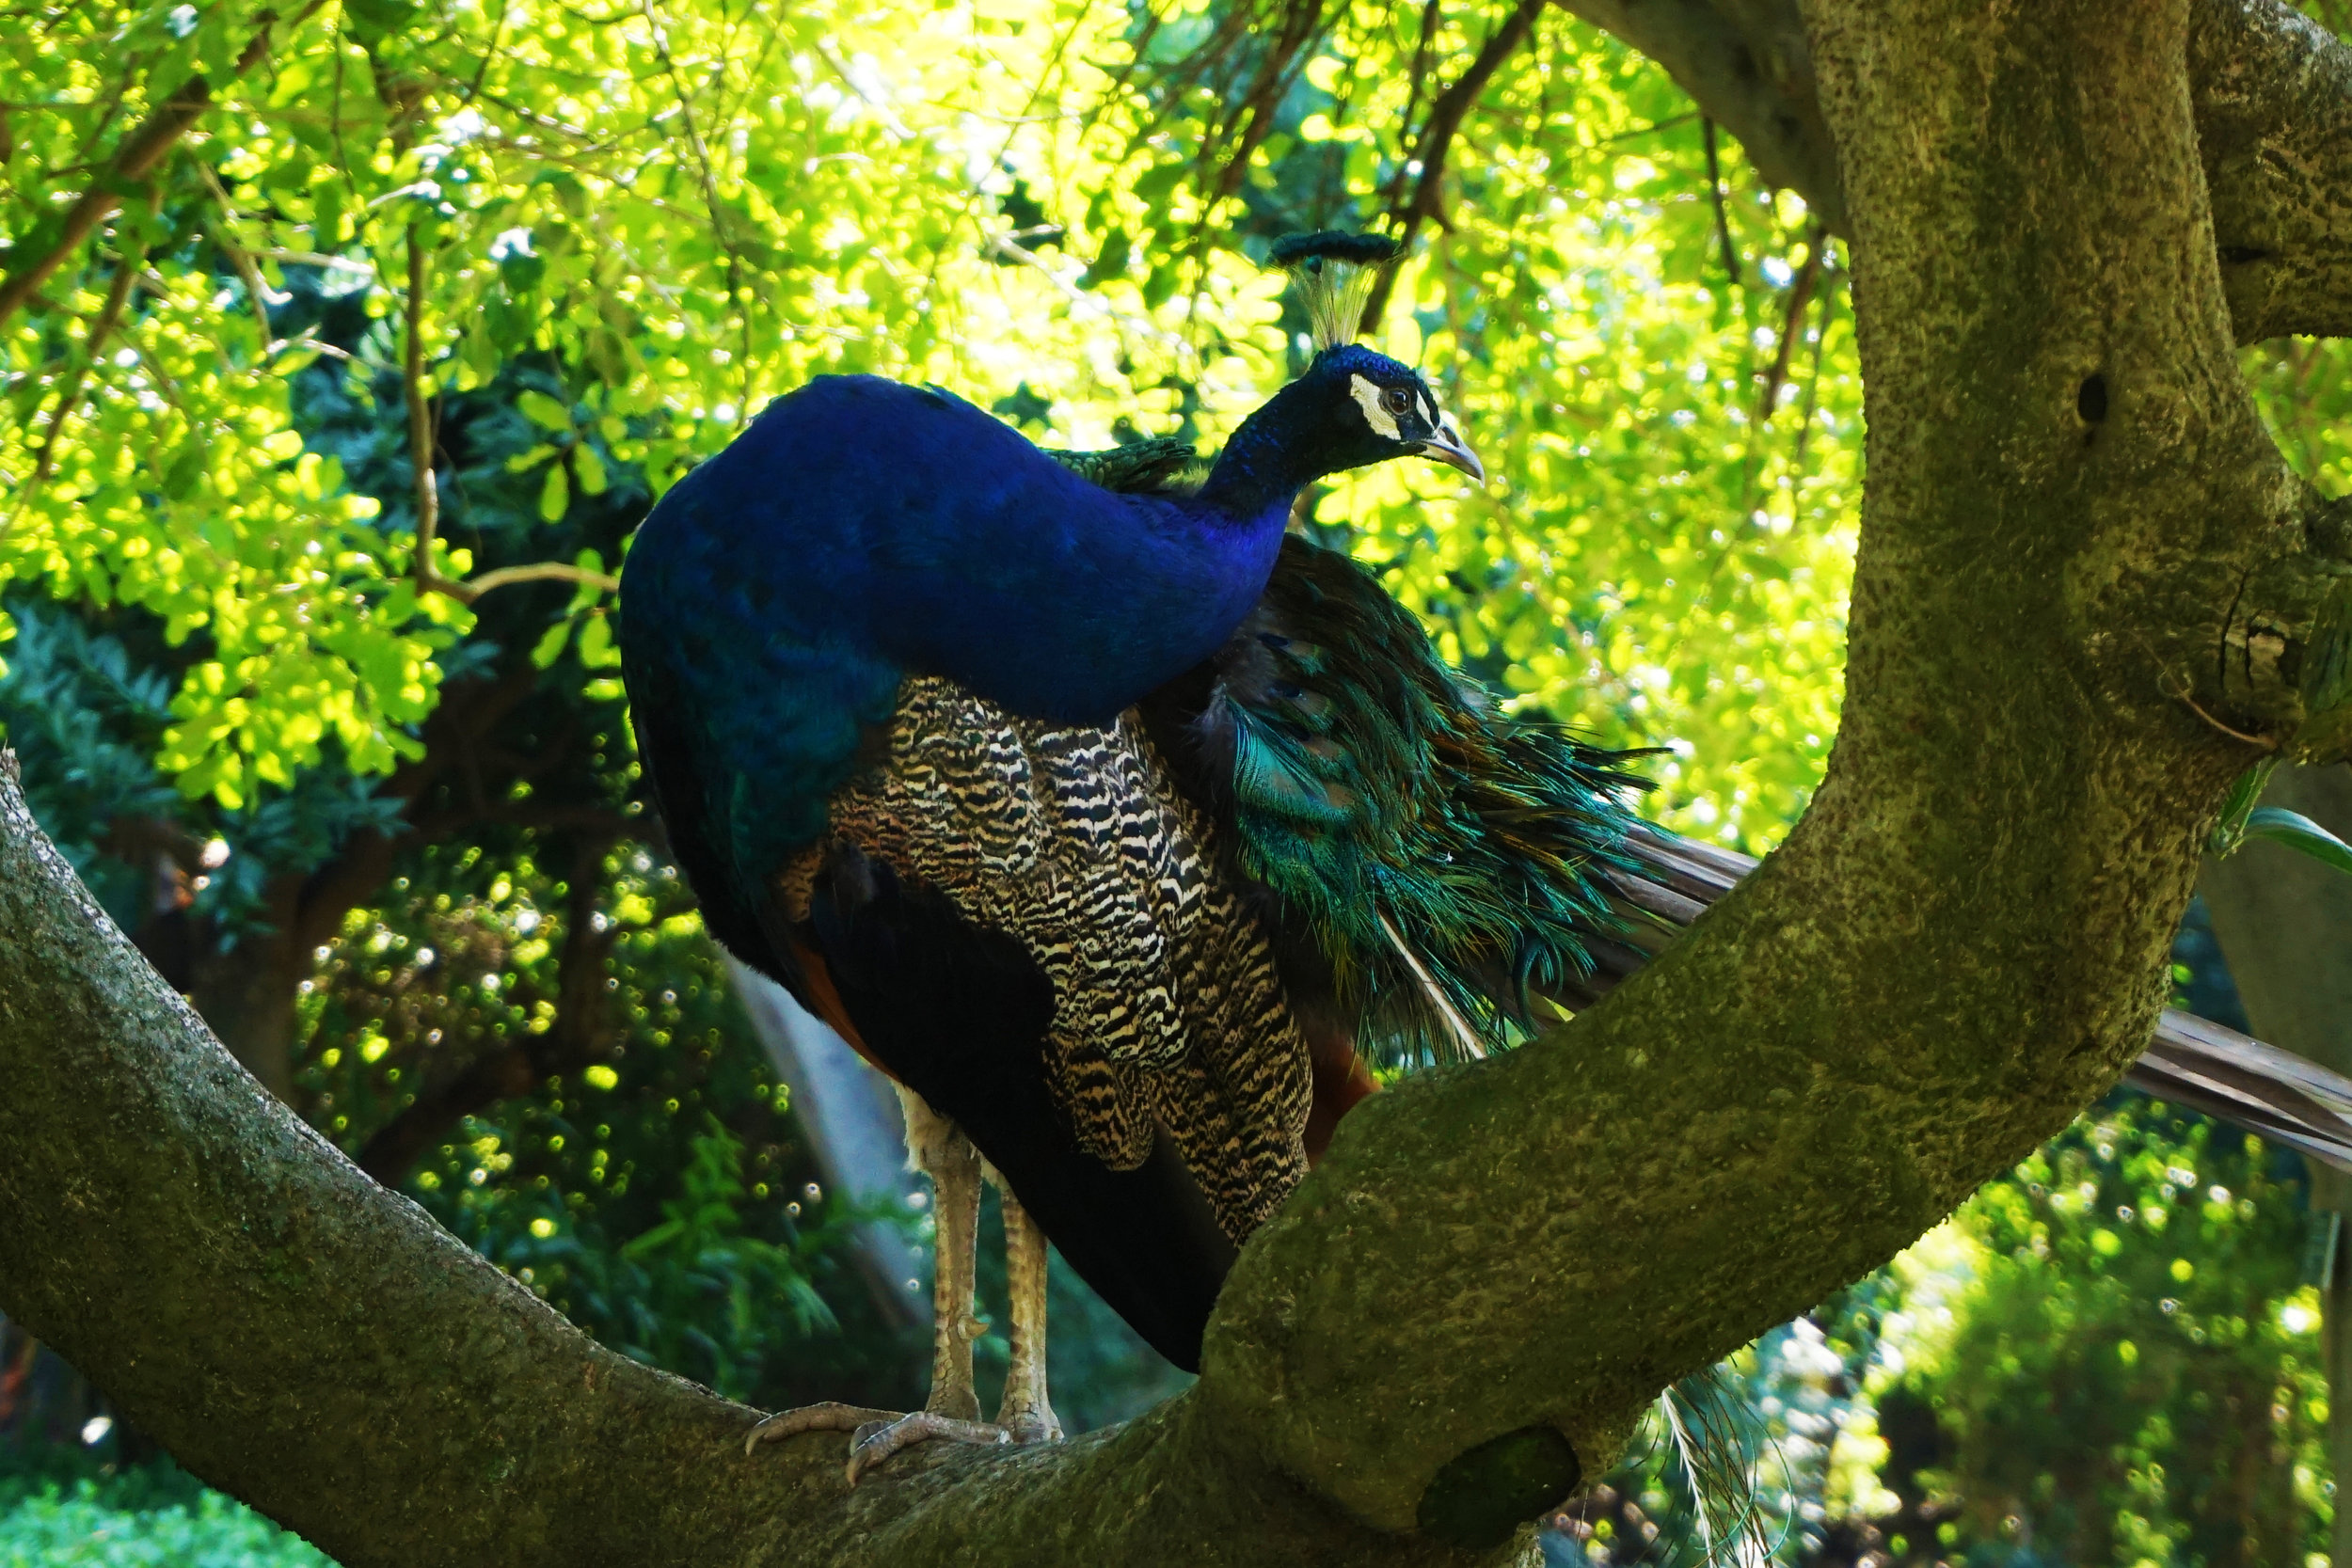 The most remarkably unbothered peacock